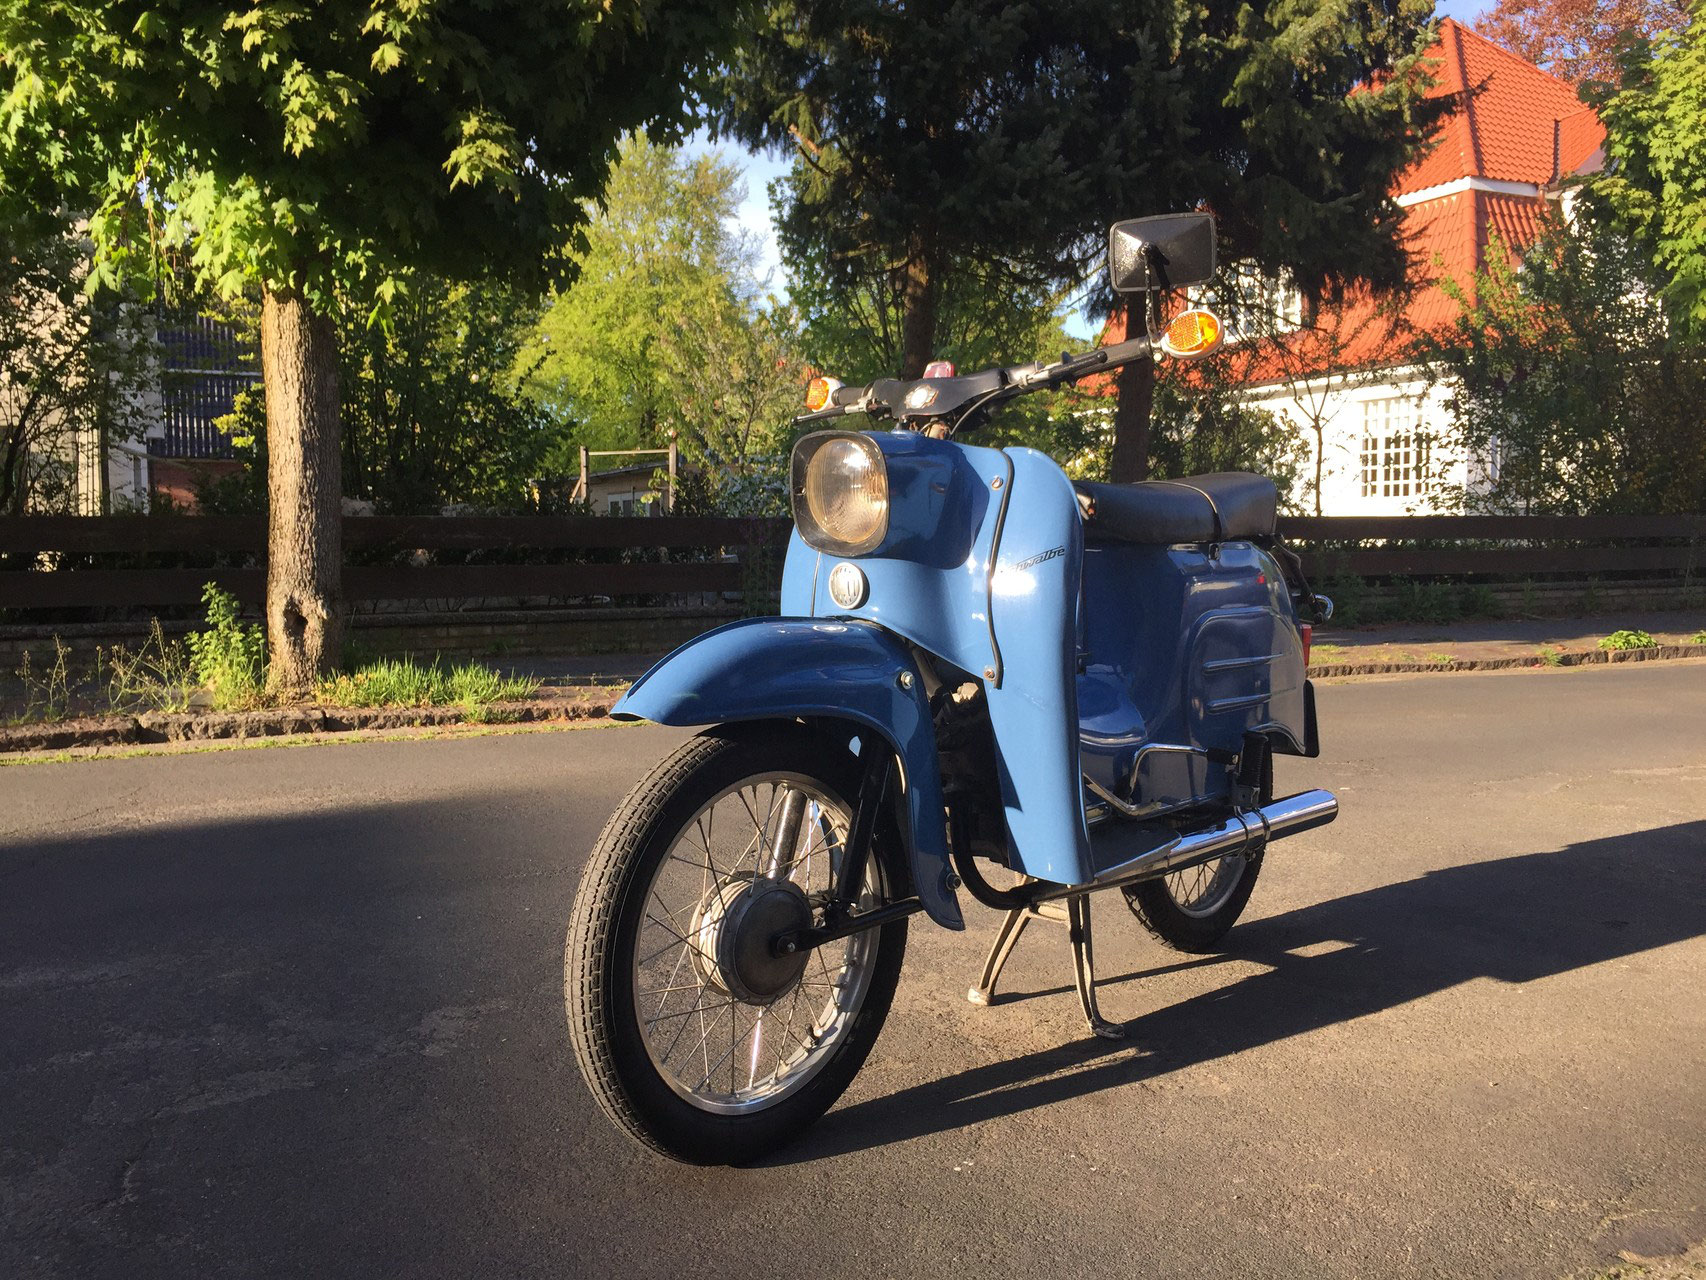 Alte Mopeds